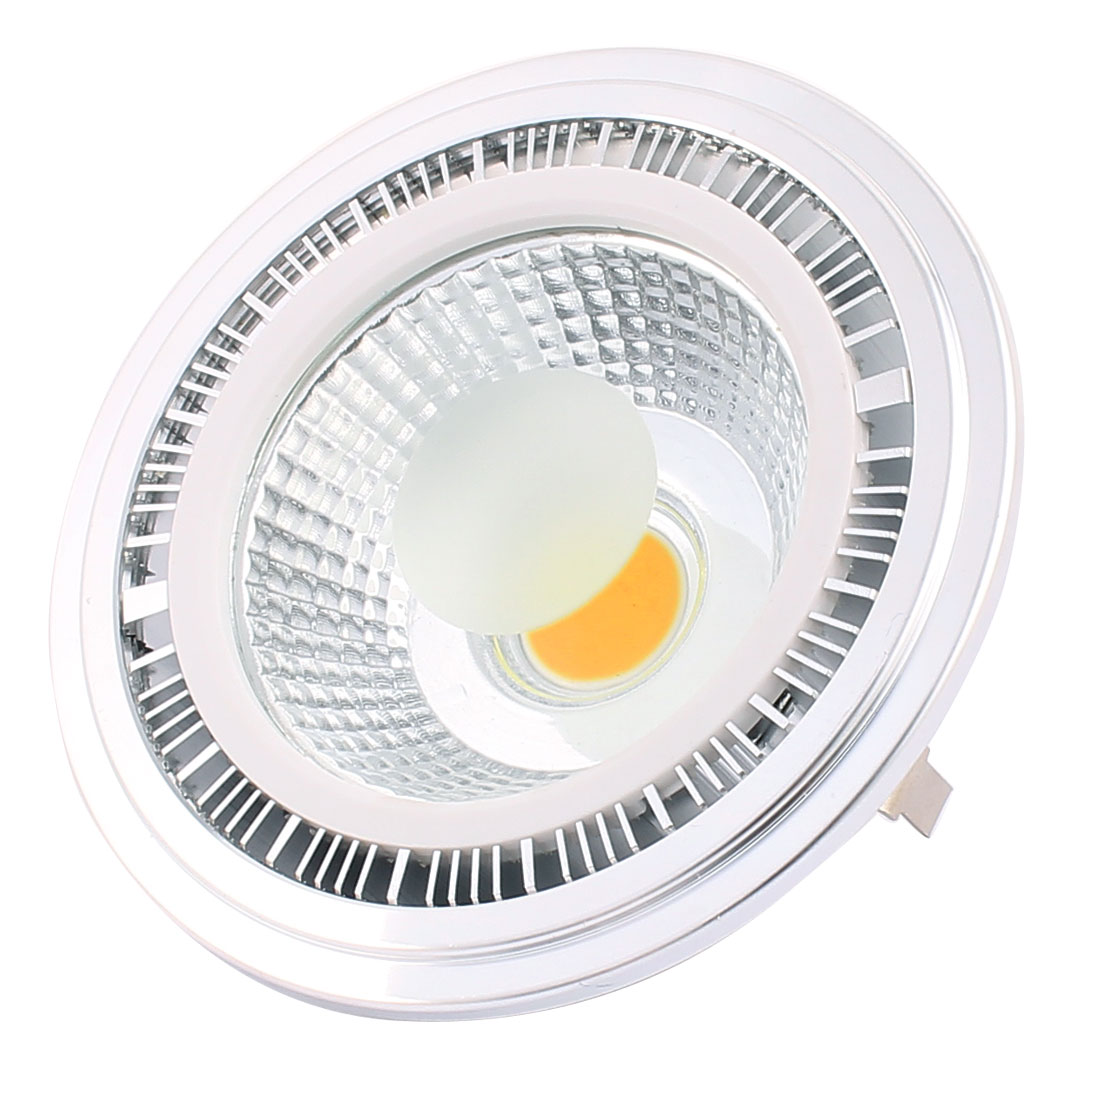 DC12V 5W AR111 G53 COB LED Ceiling Light Lamp Spotlight Reflector Warm White